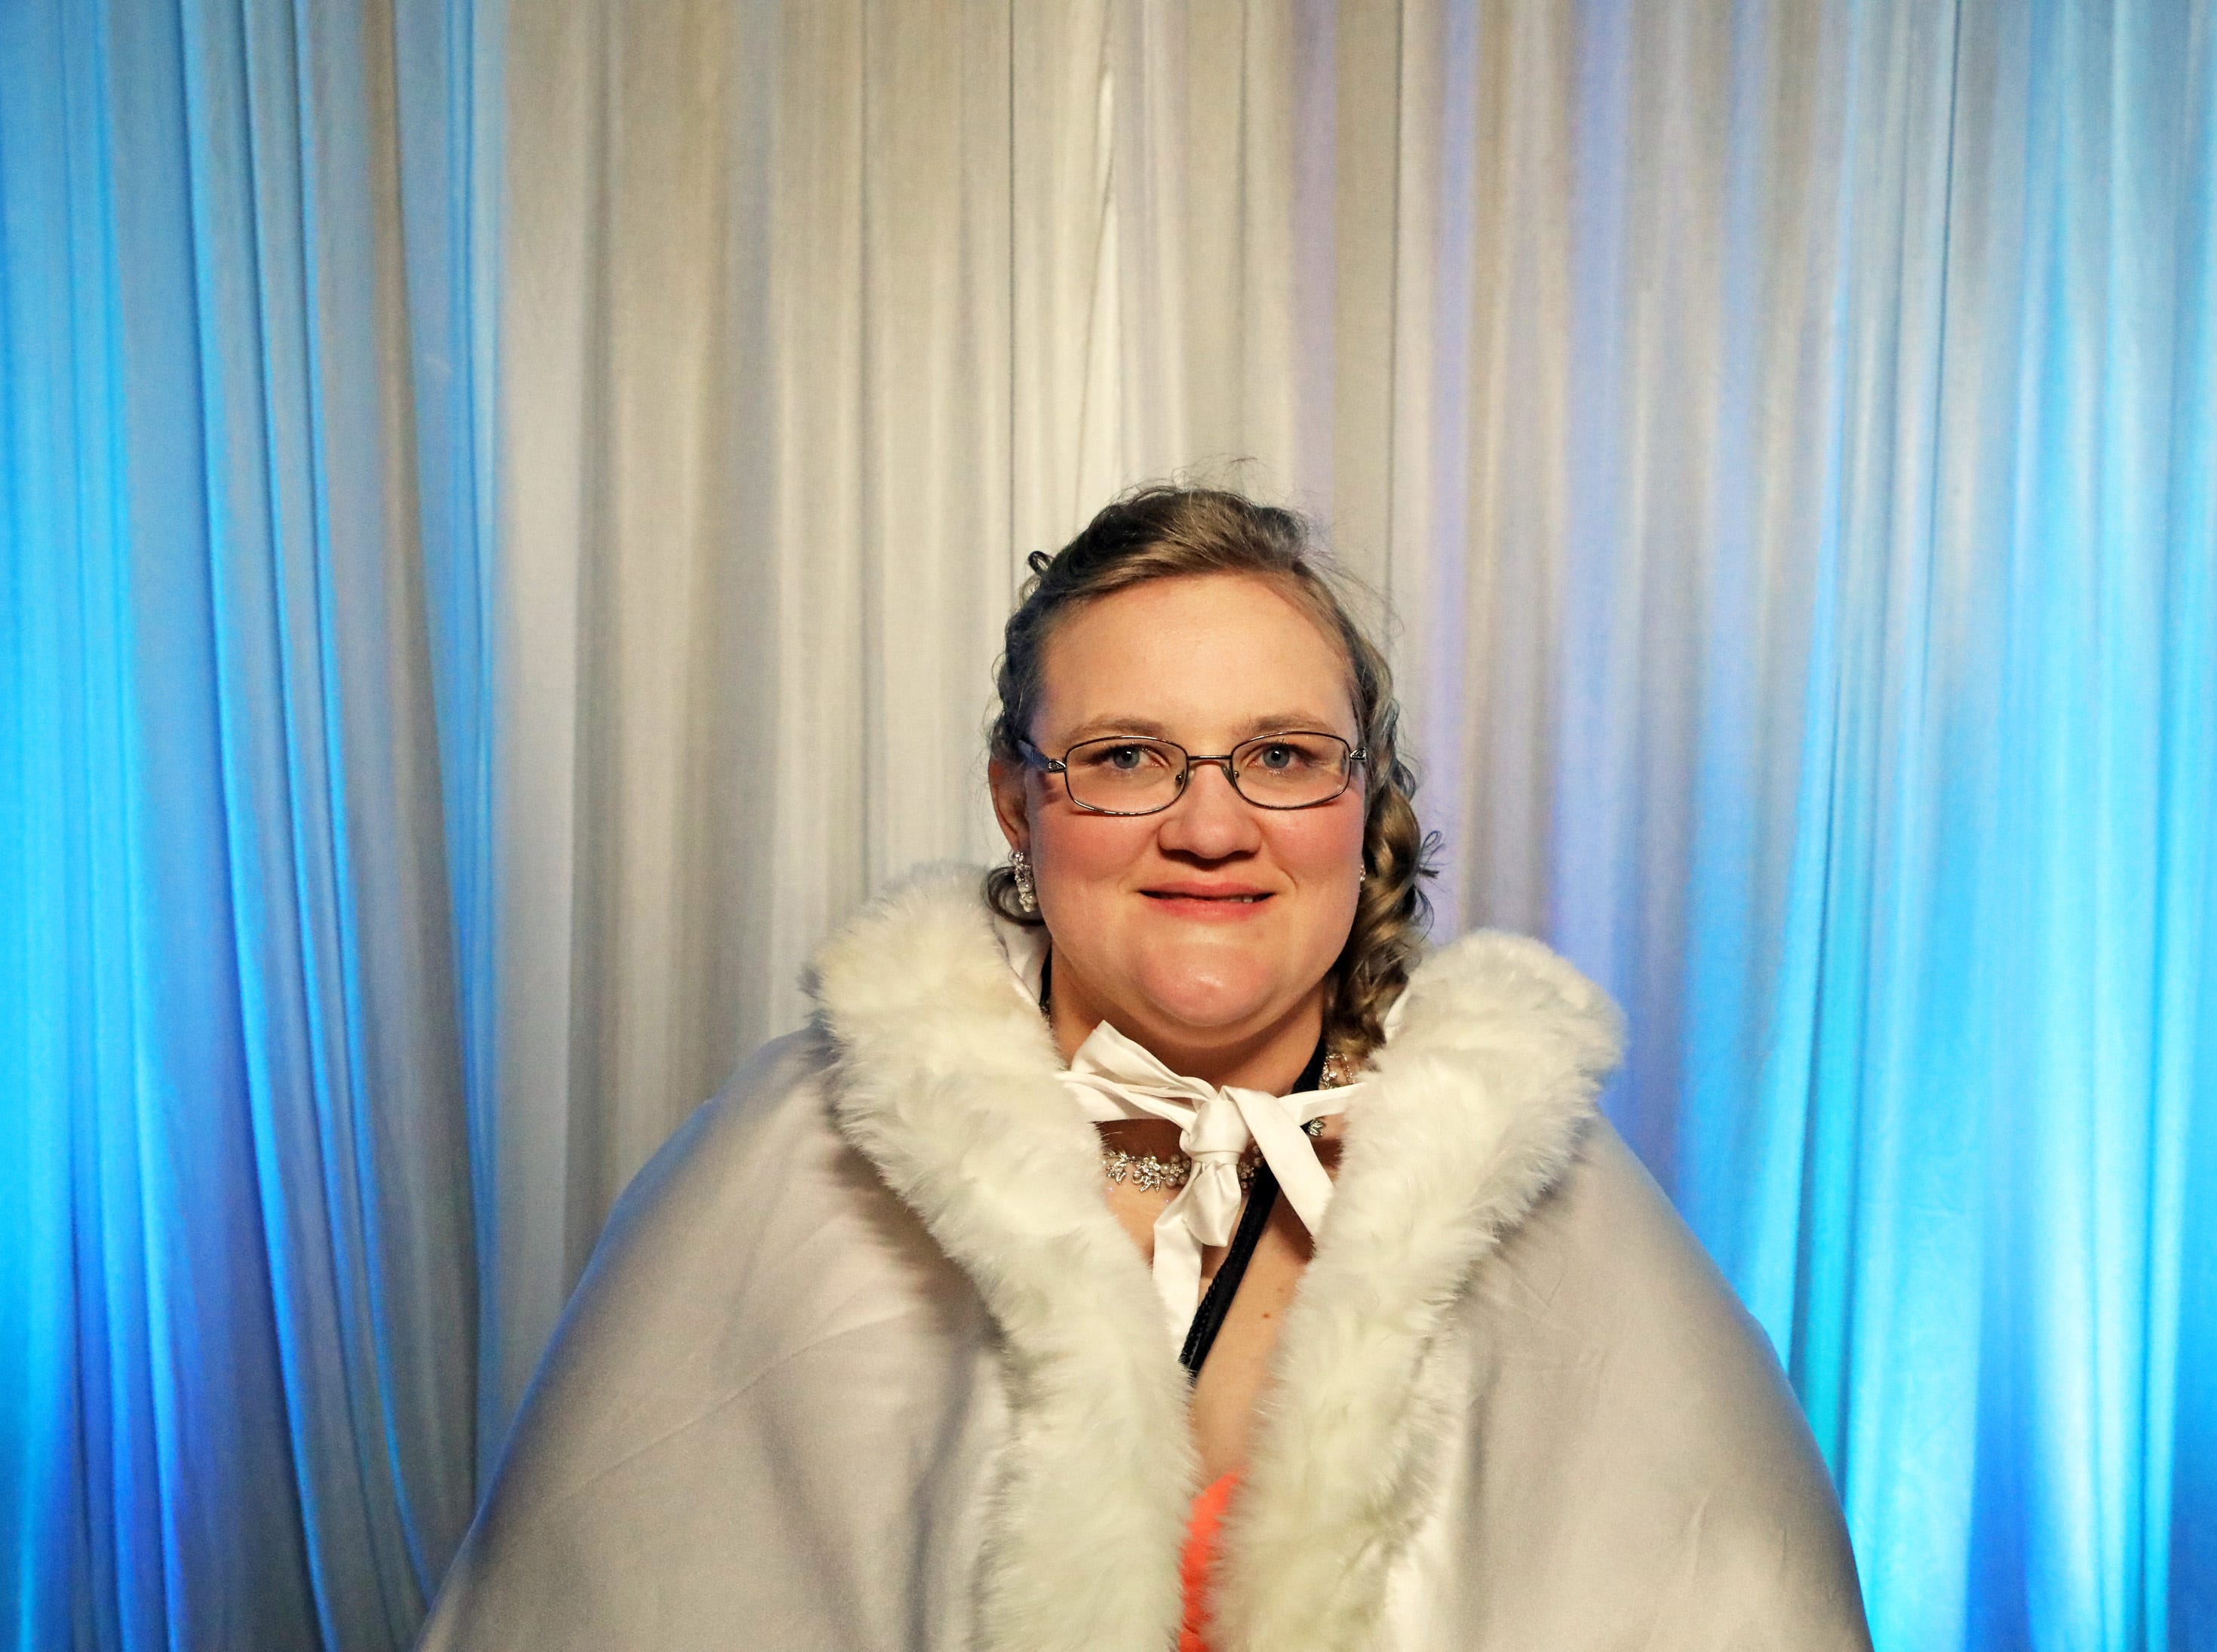 Amber Stukenholtz of Ames sits for her royal portrait during the Night to Shine event at Prairie Ridge Church in Ankeny on Friday, Feb. 8, 2019. Sponsored by the Tim Tebow Foundation, the event for adults with special needs features a prom-like atmosphere with dancing, limo rides, food and more.